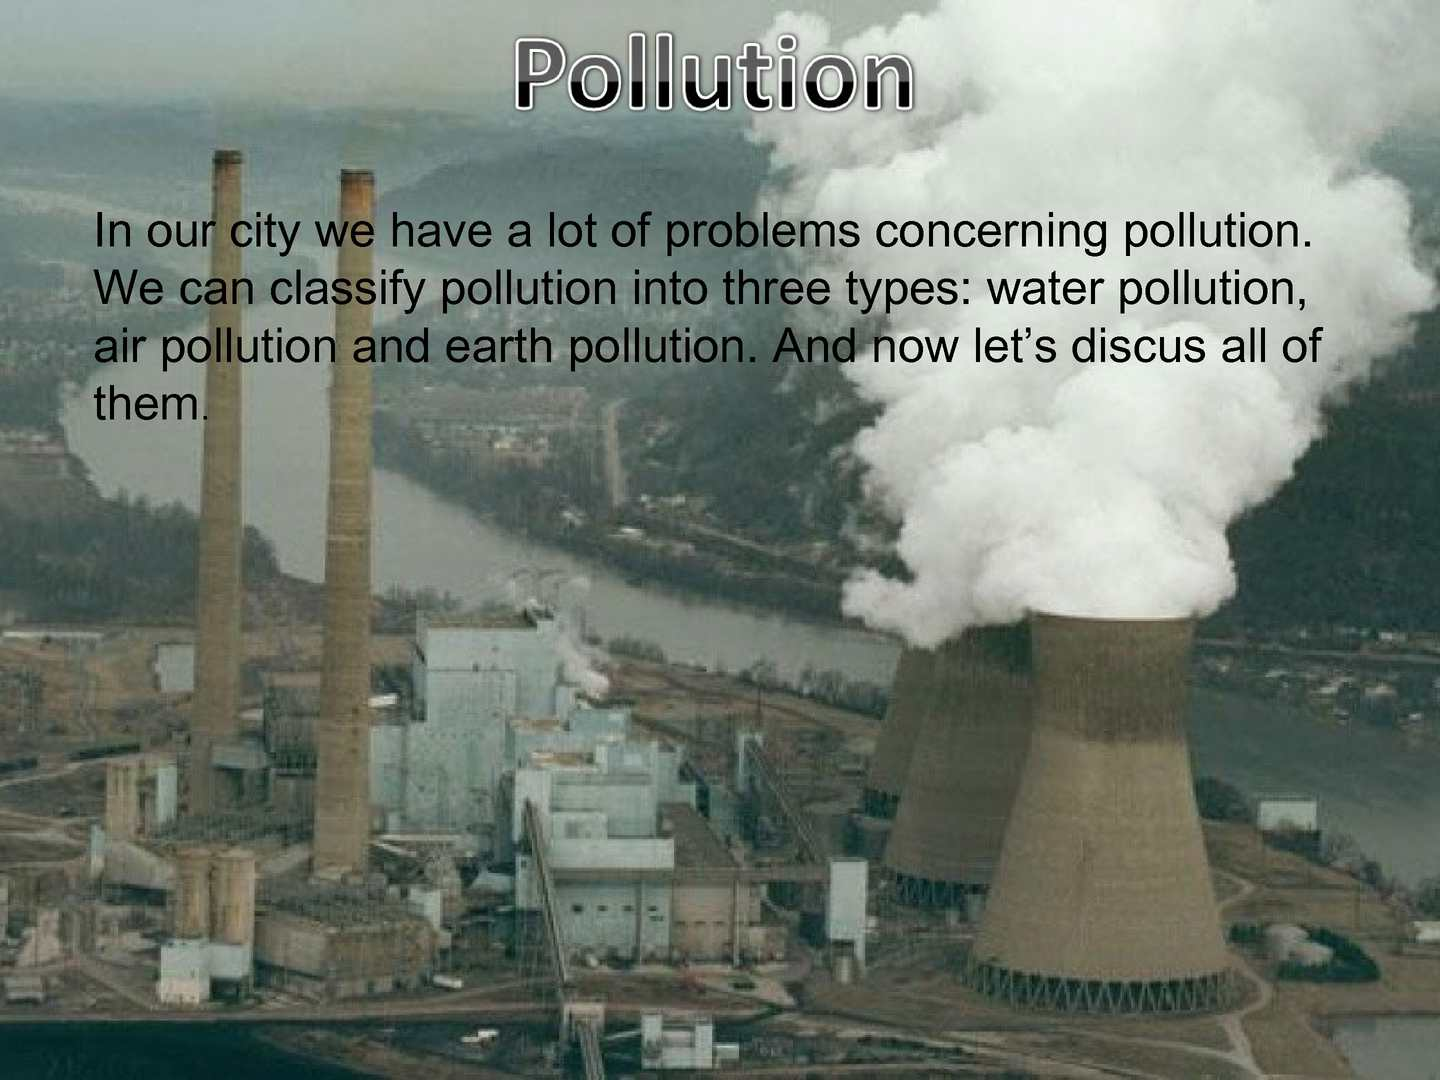 thesis about land pollution Essay about land pollution - custom research paper writing website - we  provide non-plagiarized paper assignments starting at $10/page professional.